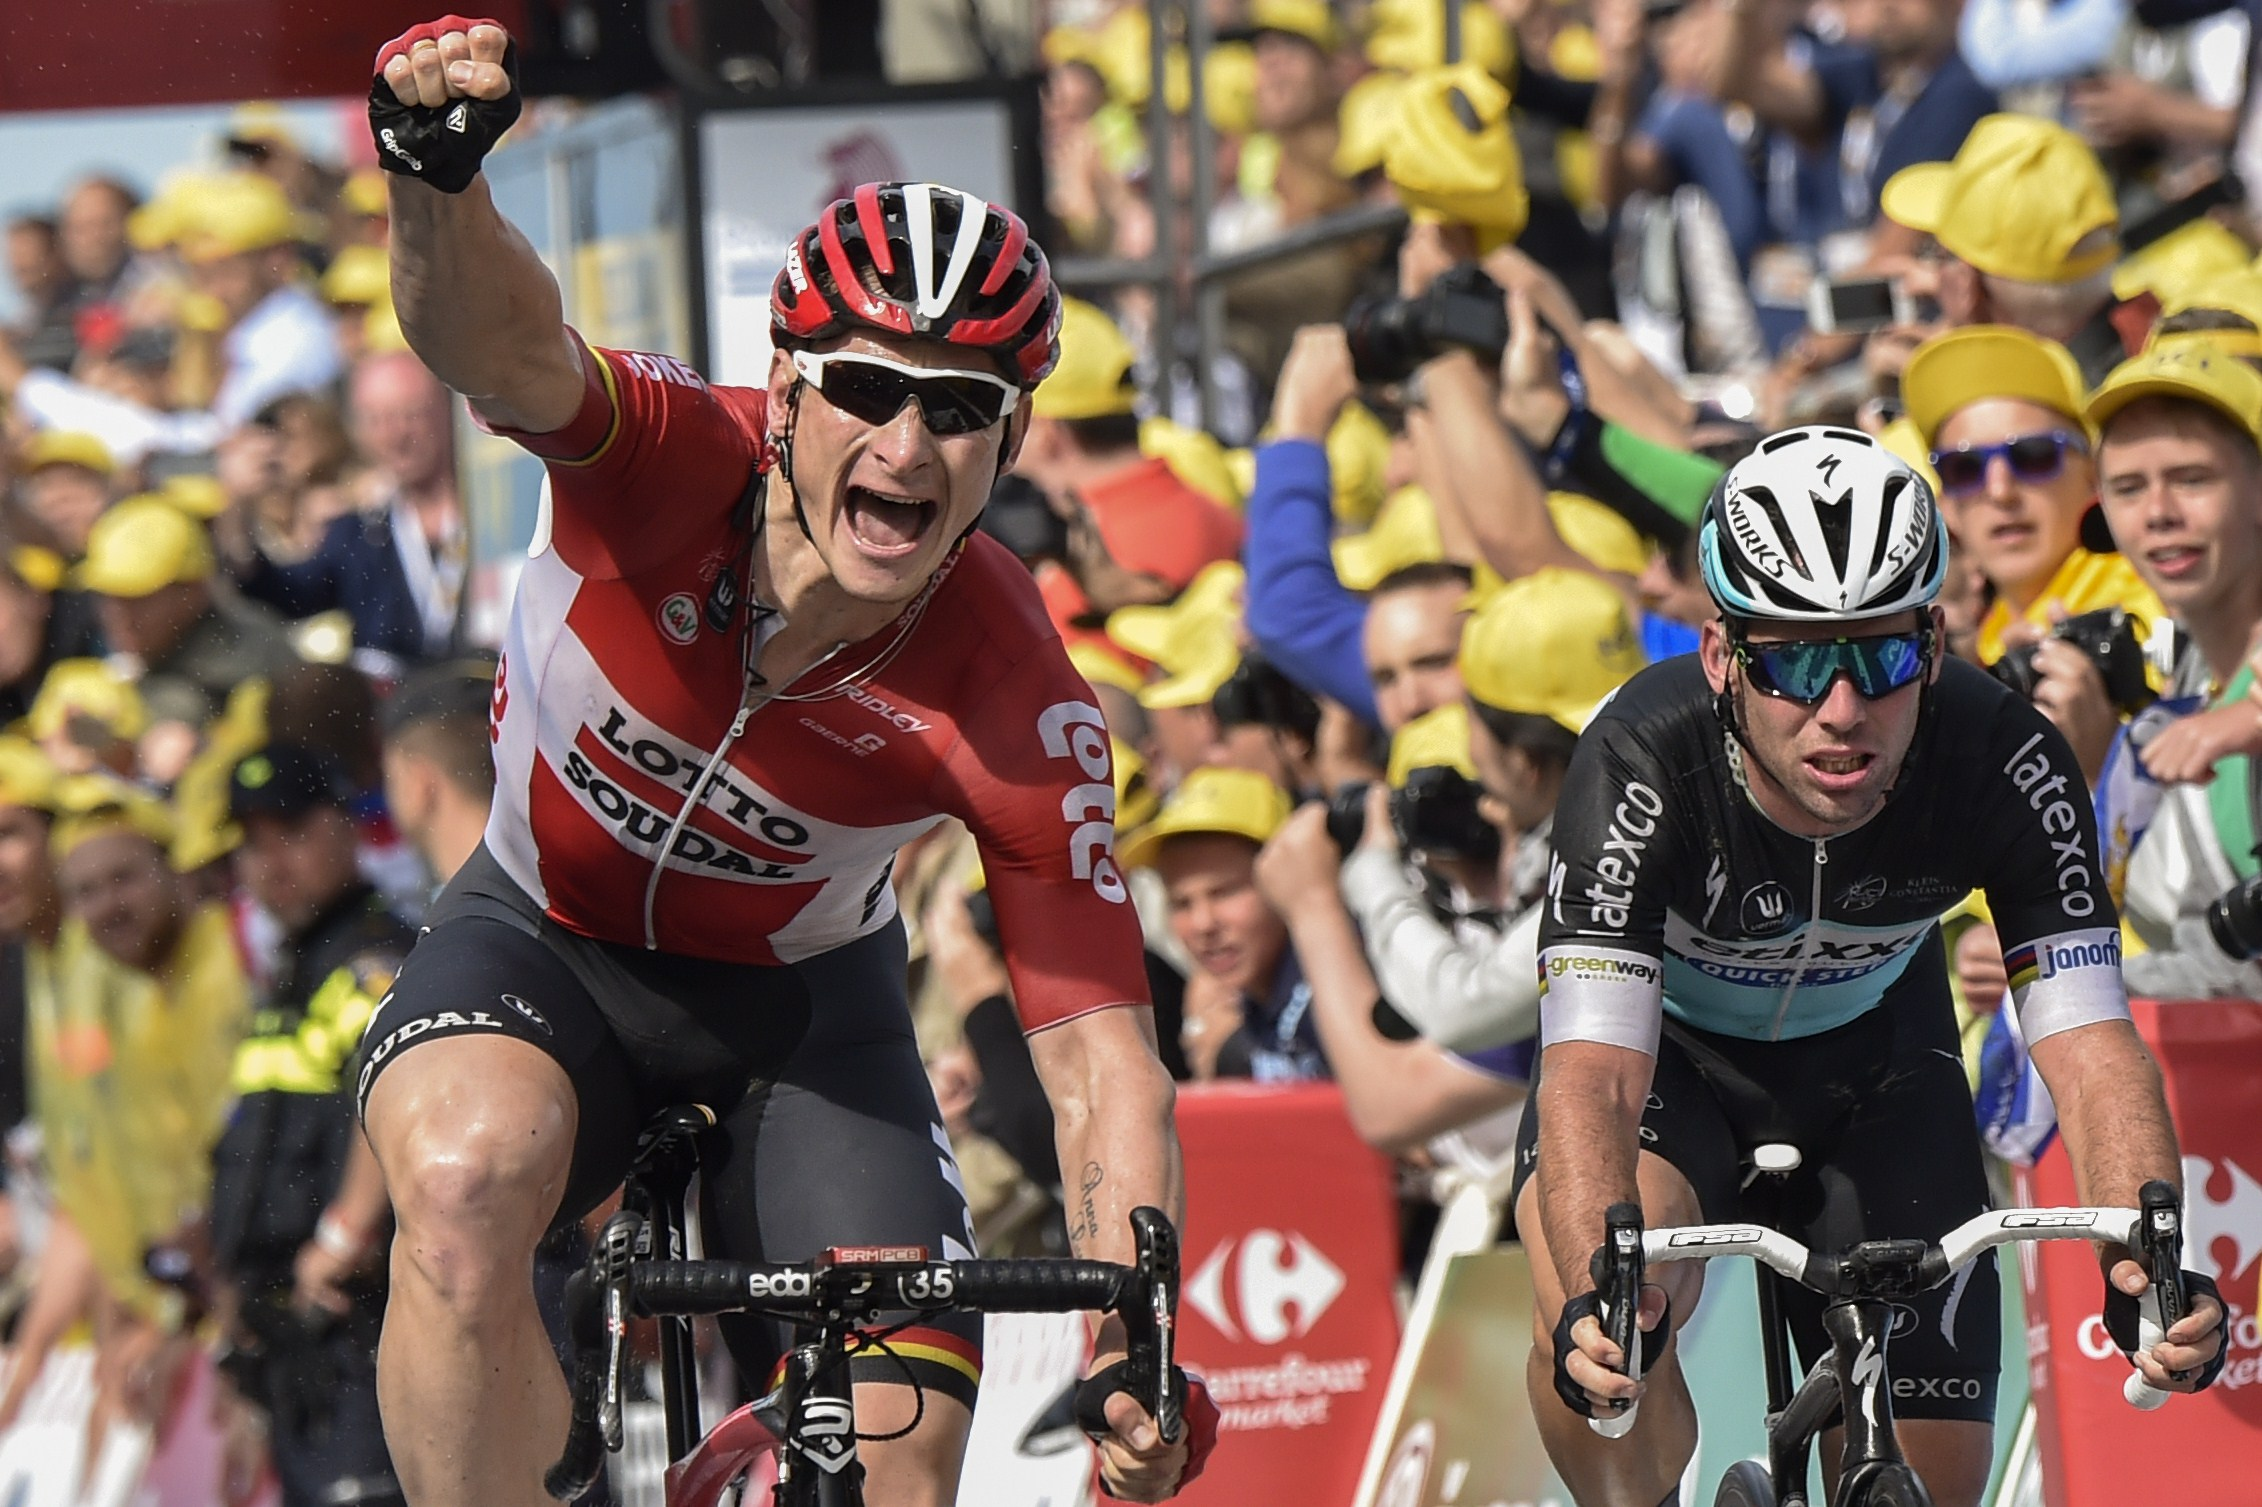 Thumbnail: Andr� Greipel (Lotto Soudal) ERIC FEFERBERG/AFP/Getty Images.